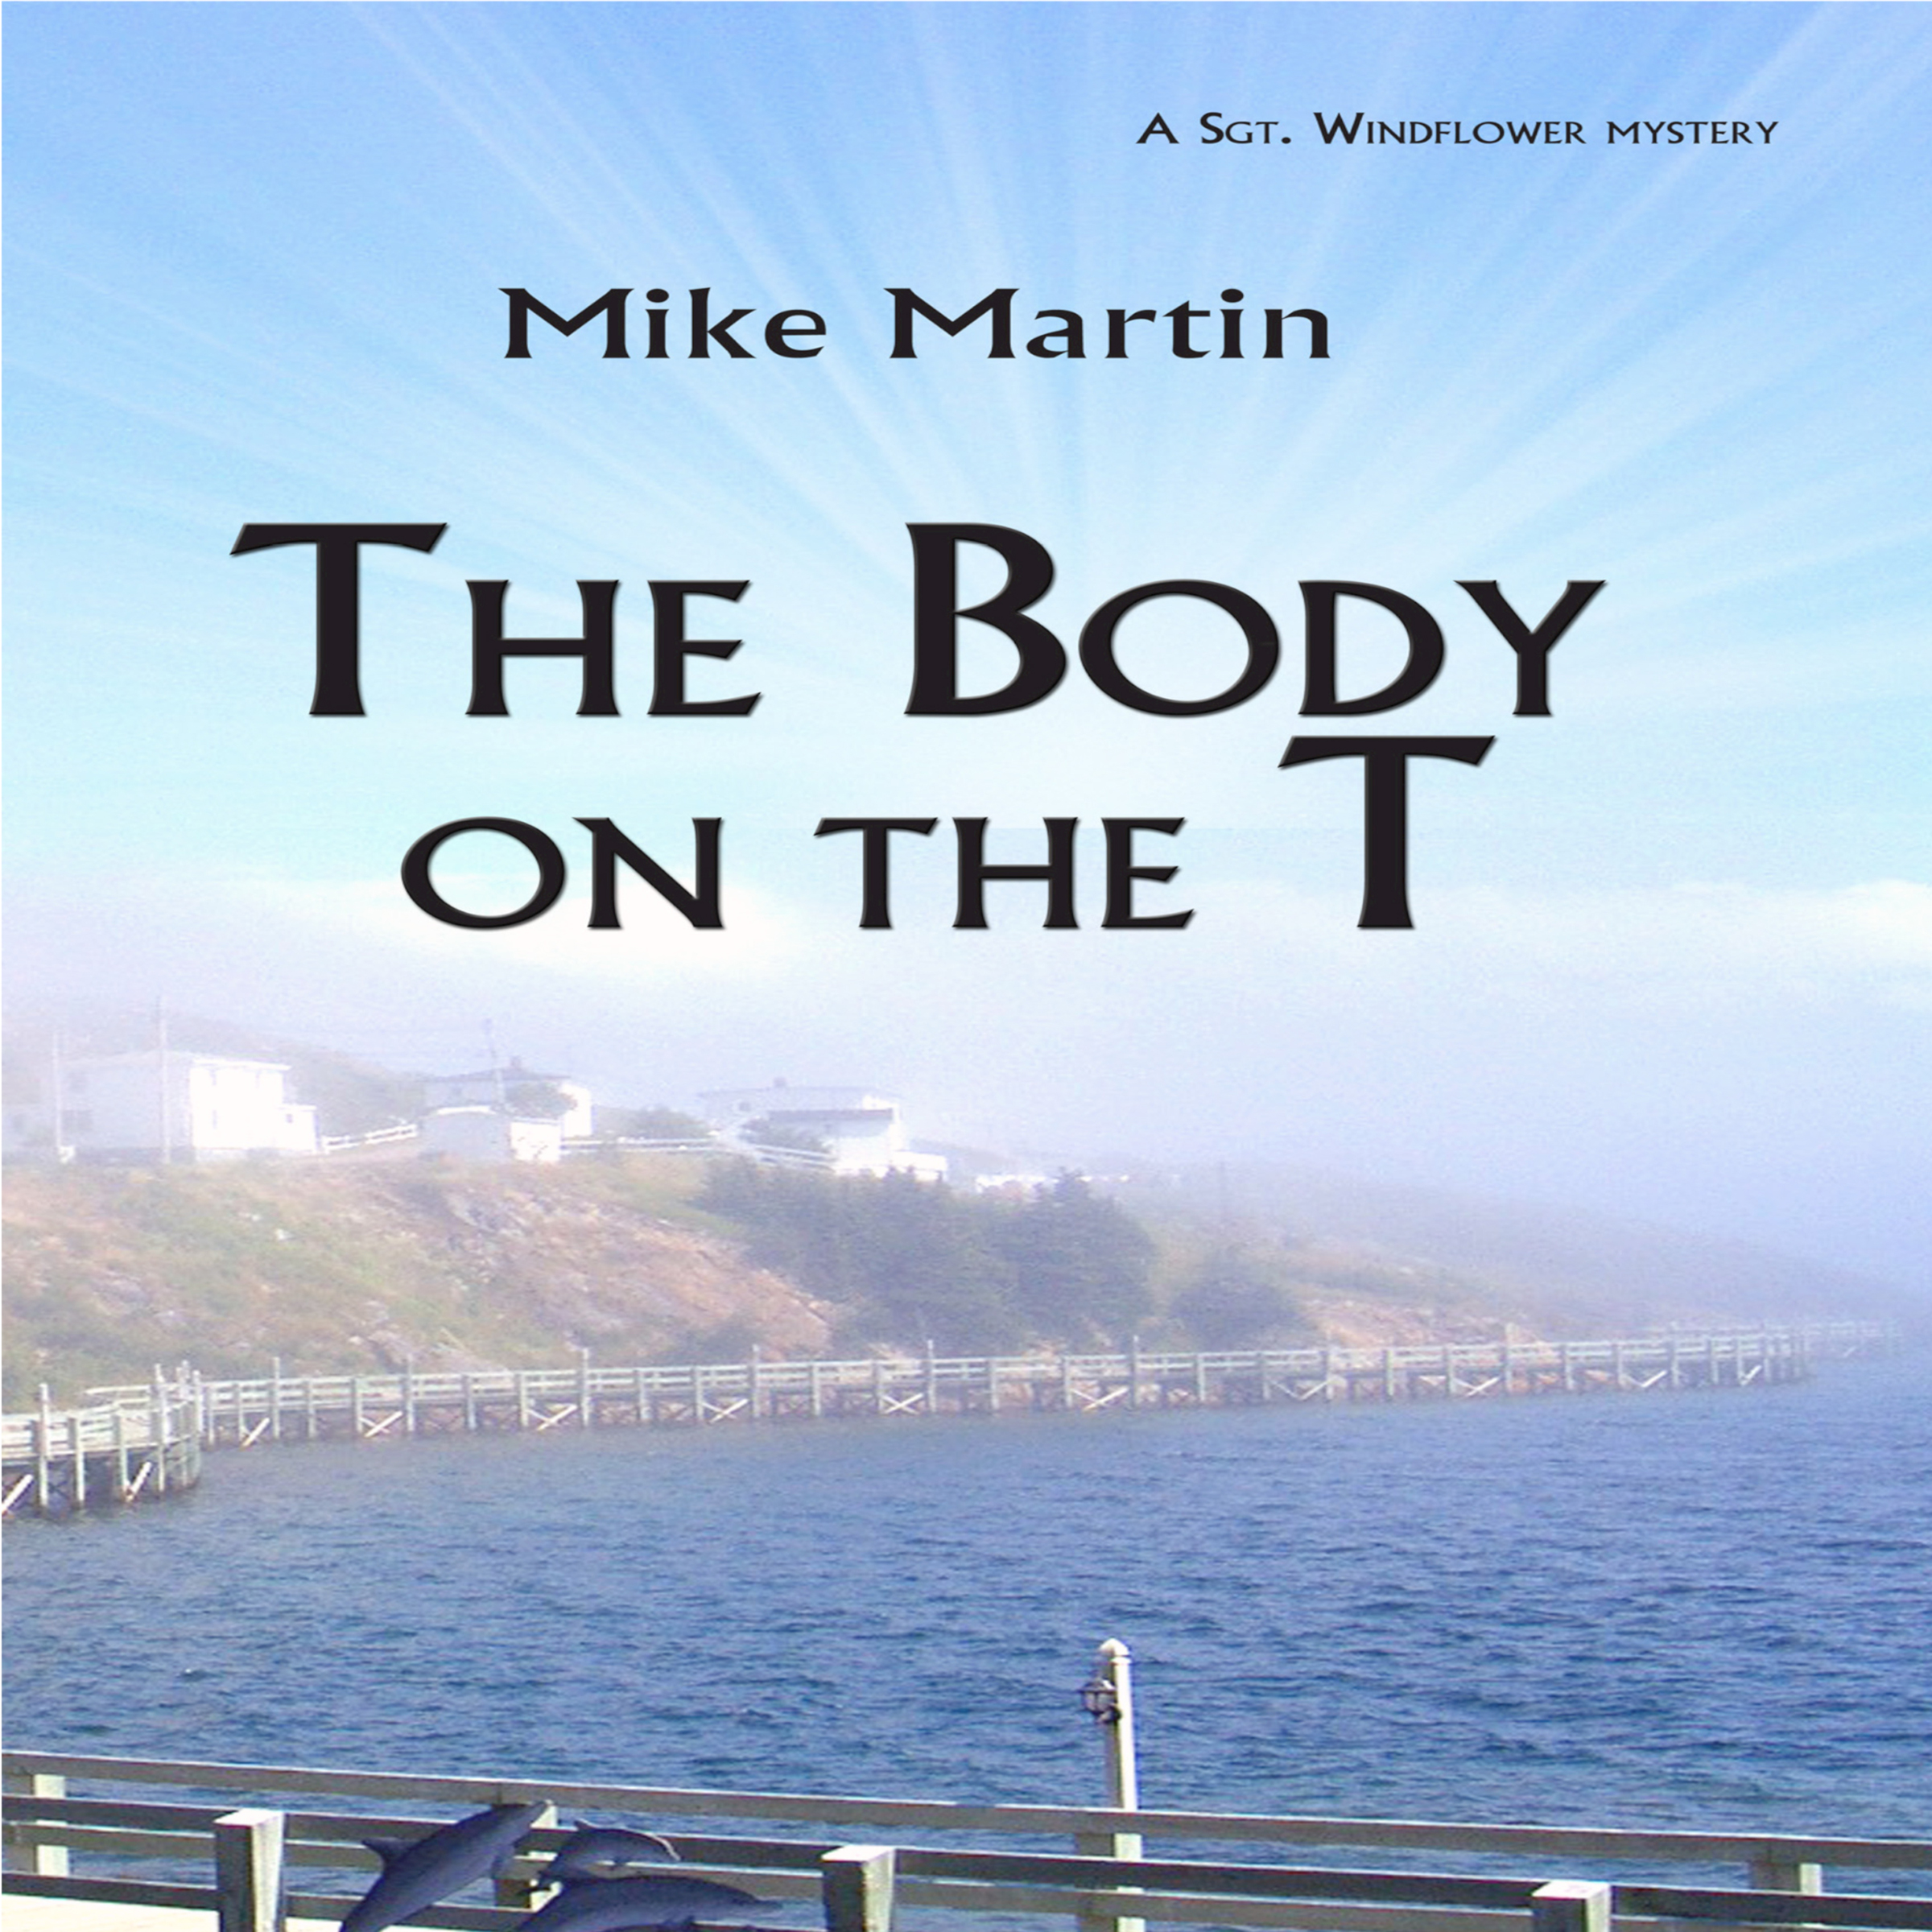 The Body on the T cover image